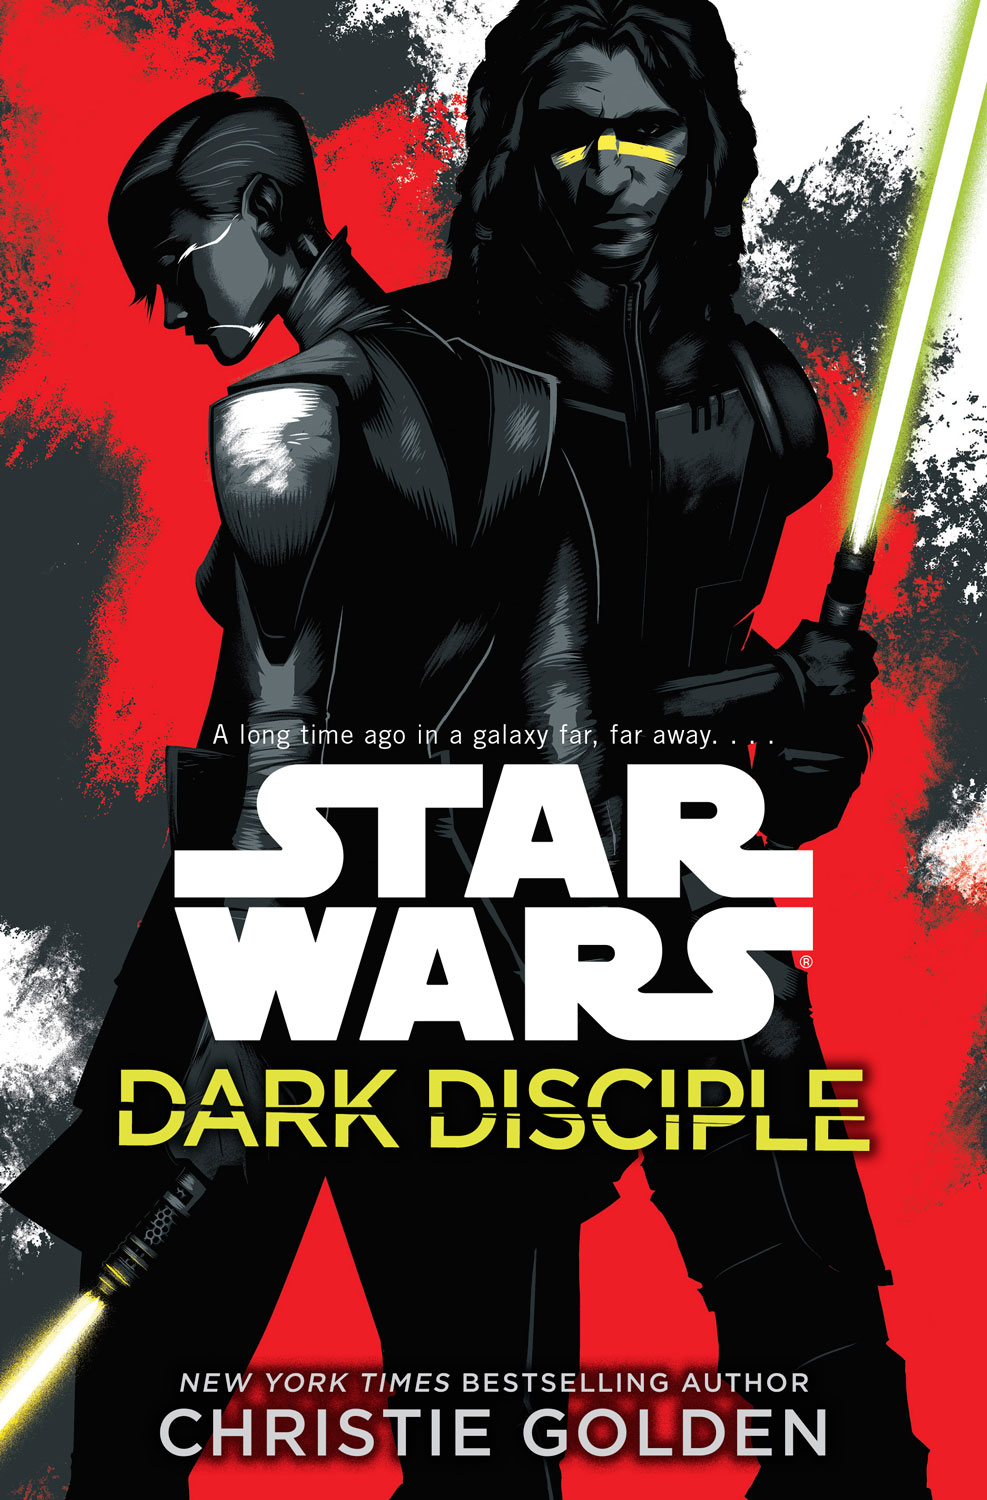 Dark_Disciple_Star_Wars_Clone_Wars_Ventress_Vos_Golden